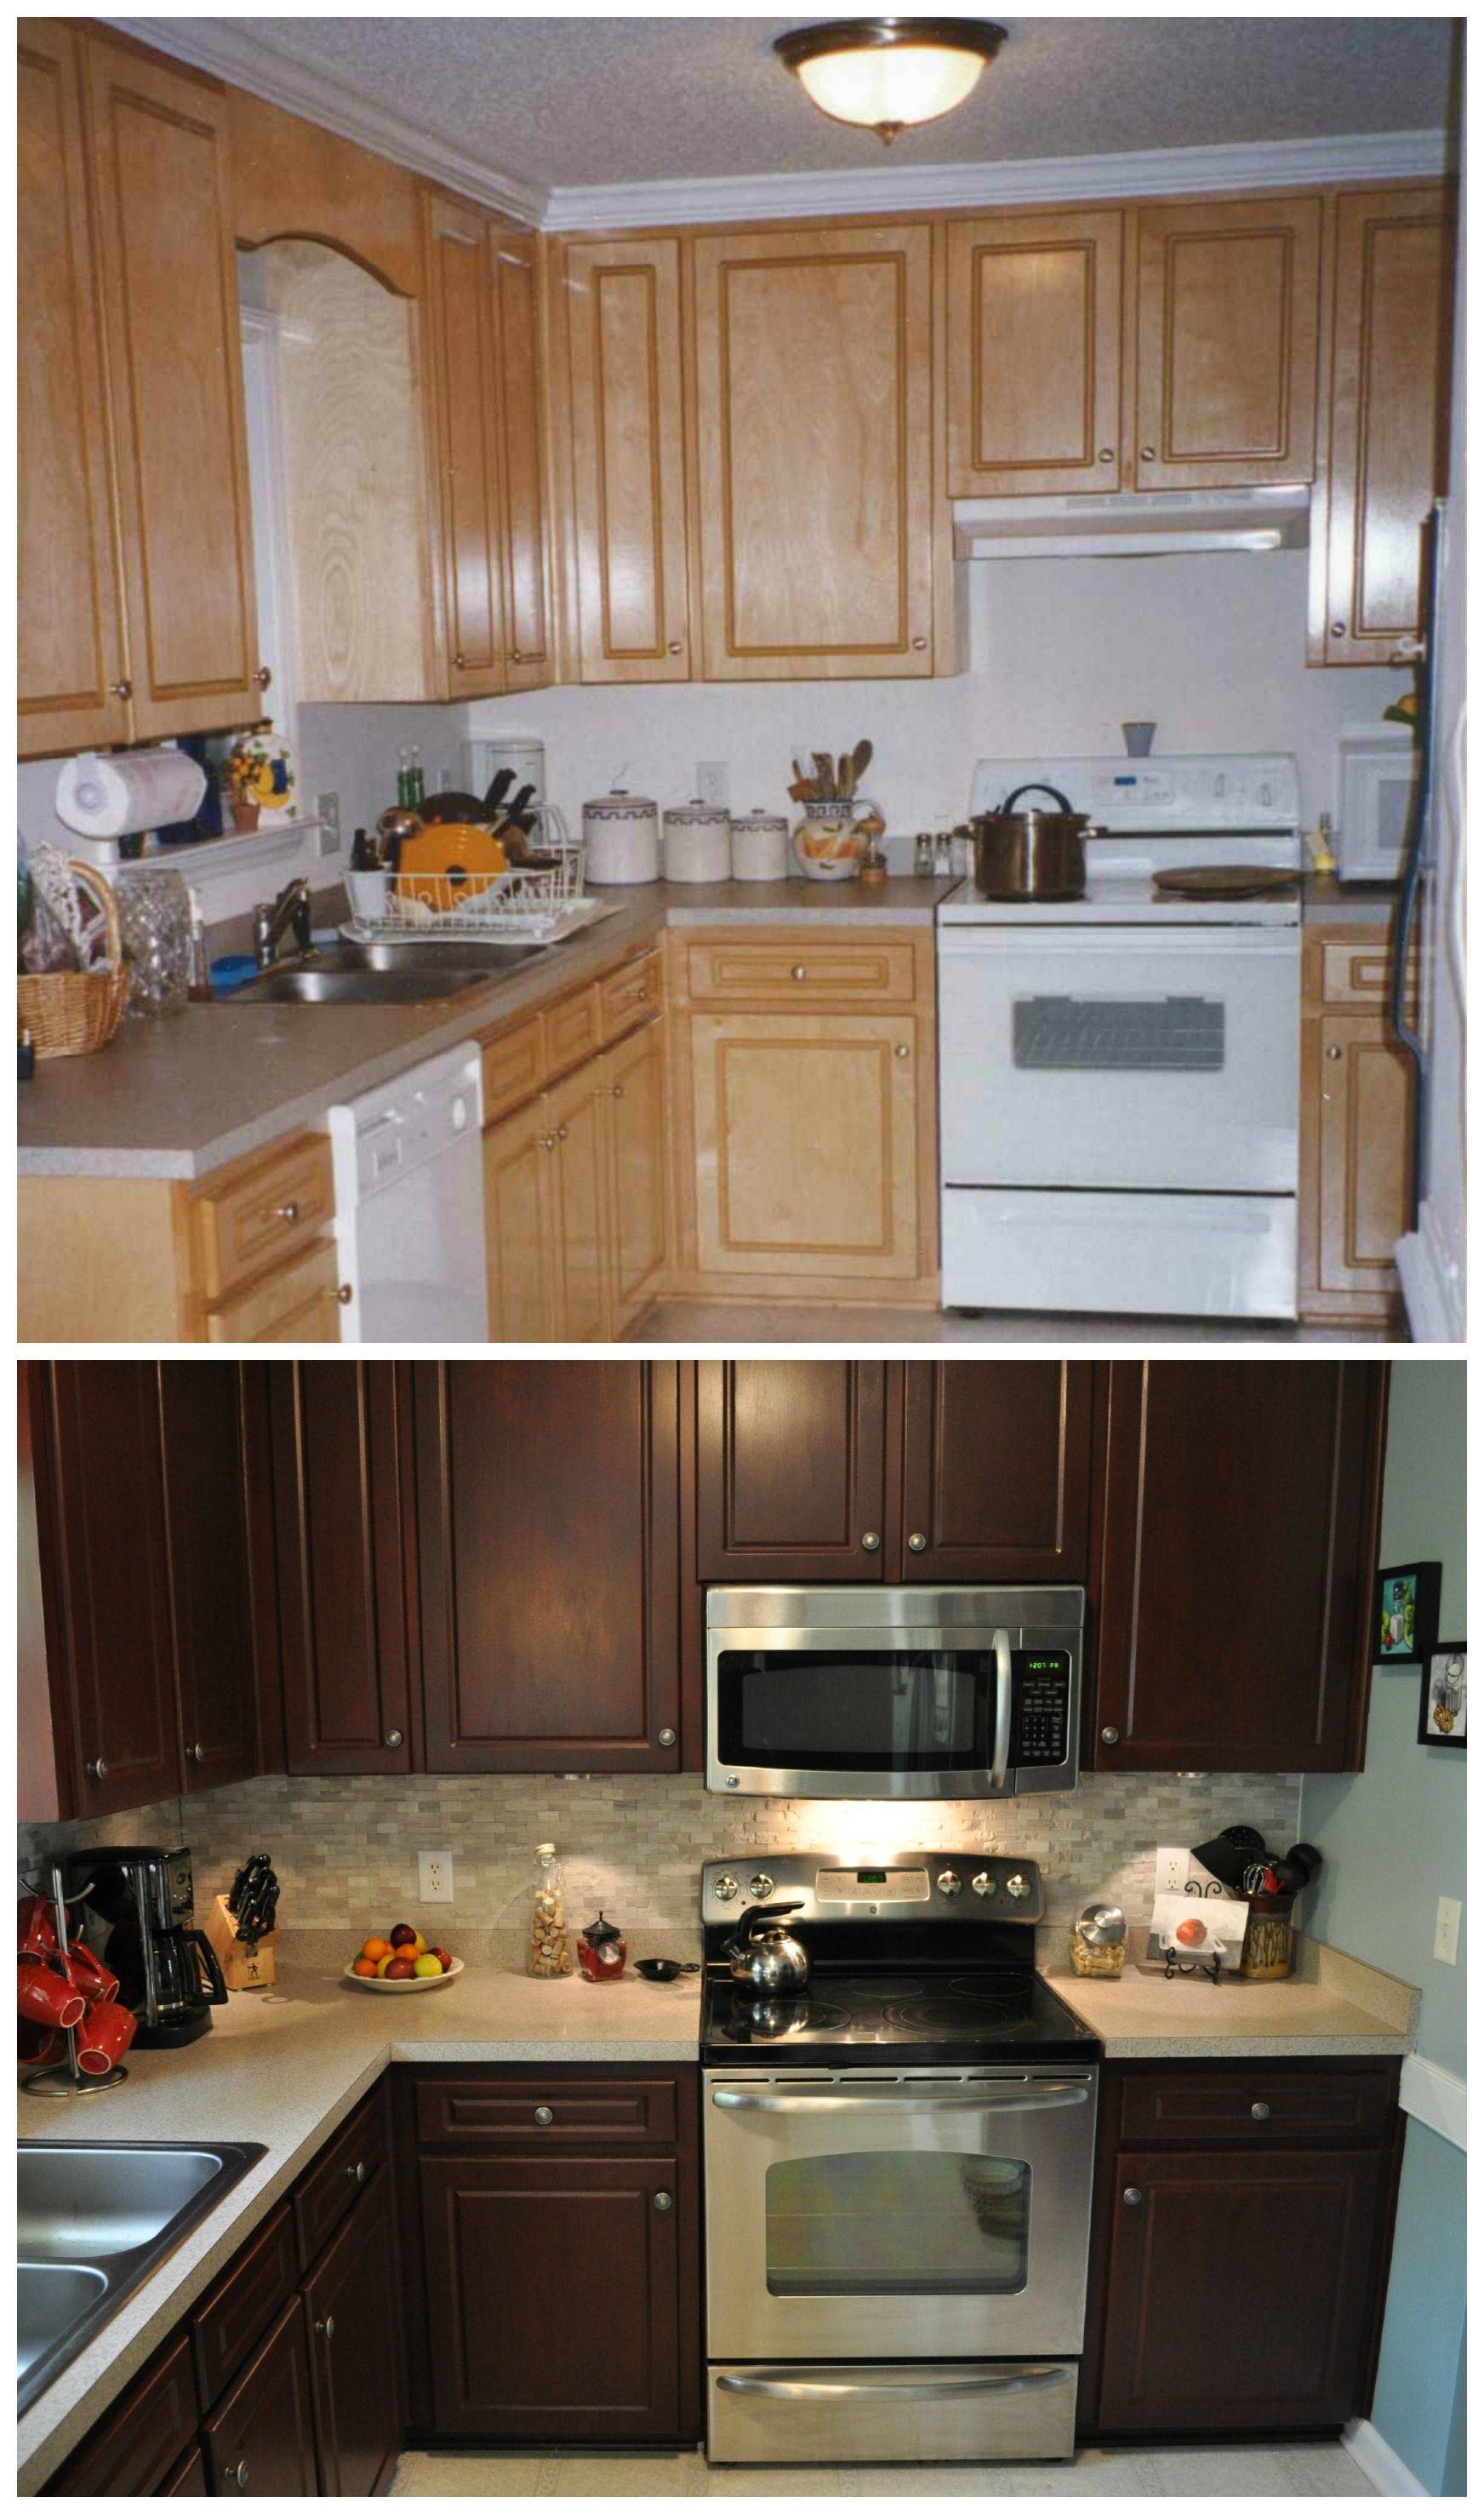 Before And After Photos Of My Kitchen I Used The Rust Oleum Cabinet Transformations Product Col Kitchen Diy Makeover Kitchen Design Stained Kitchen Cabinets